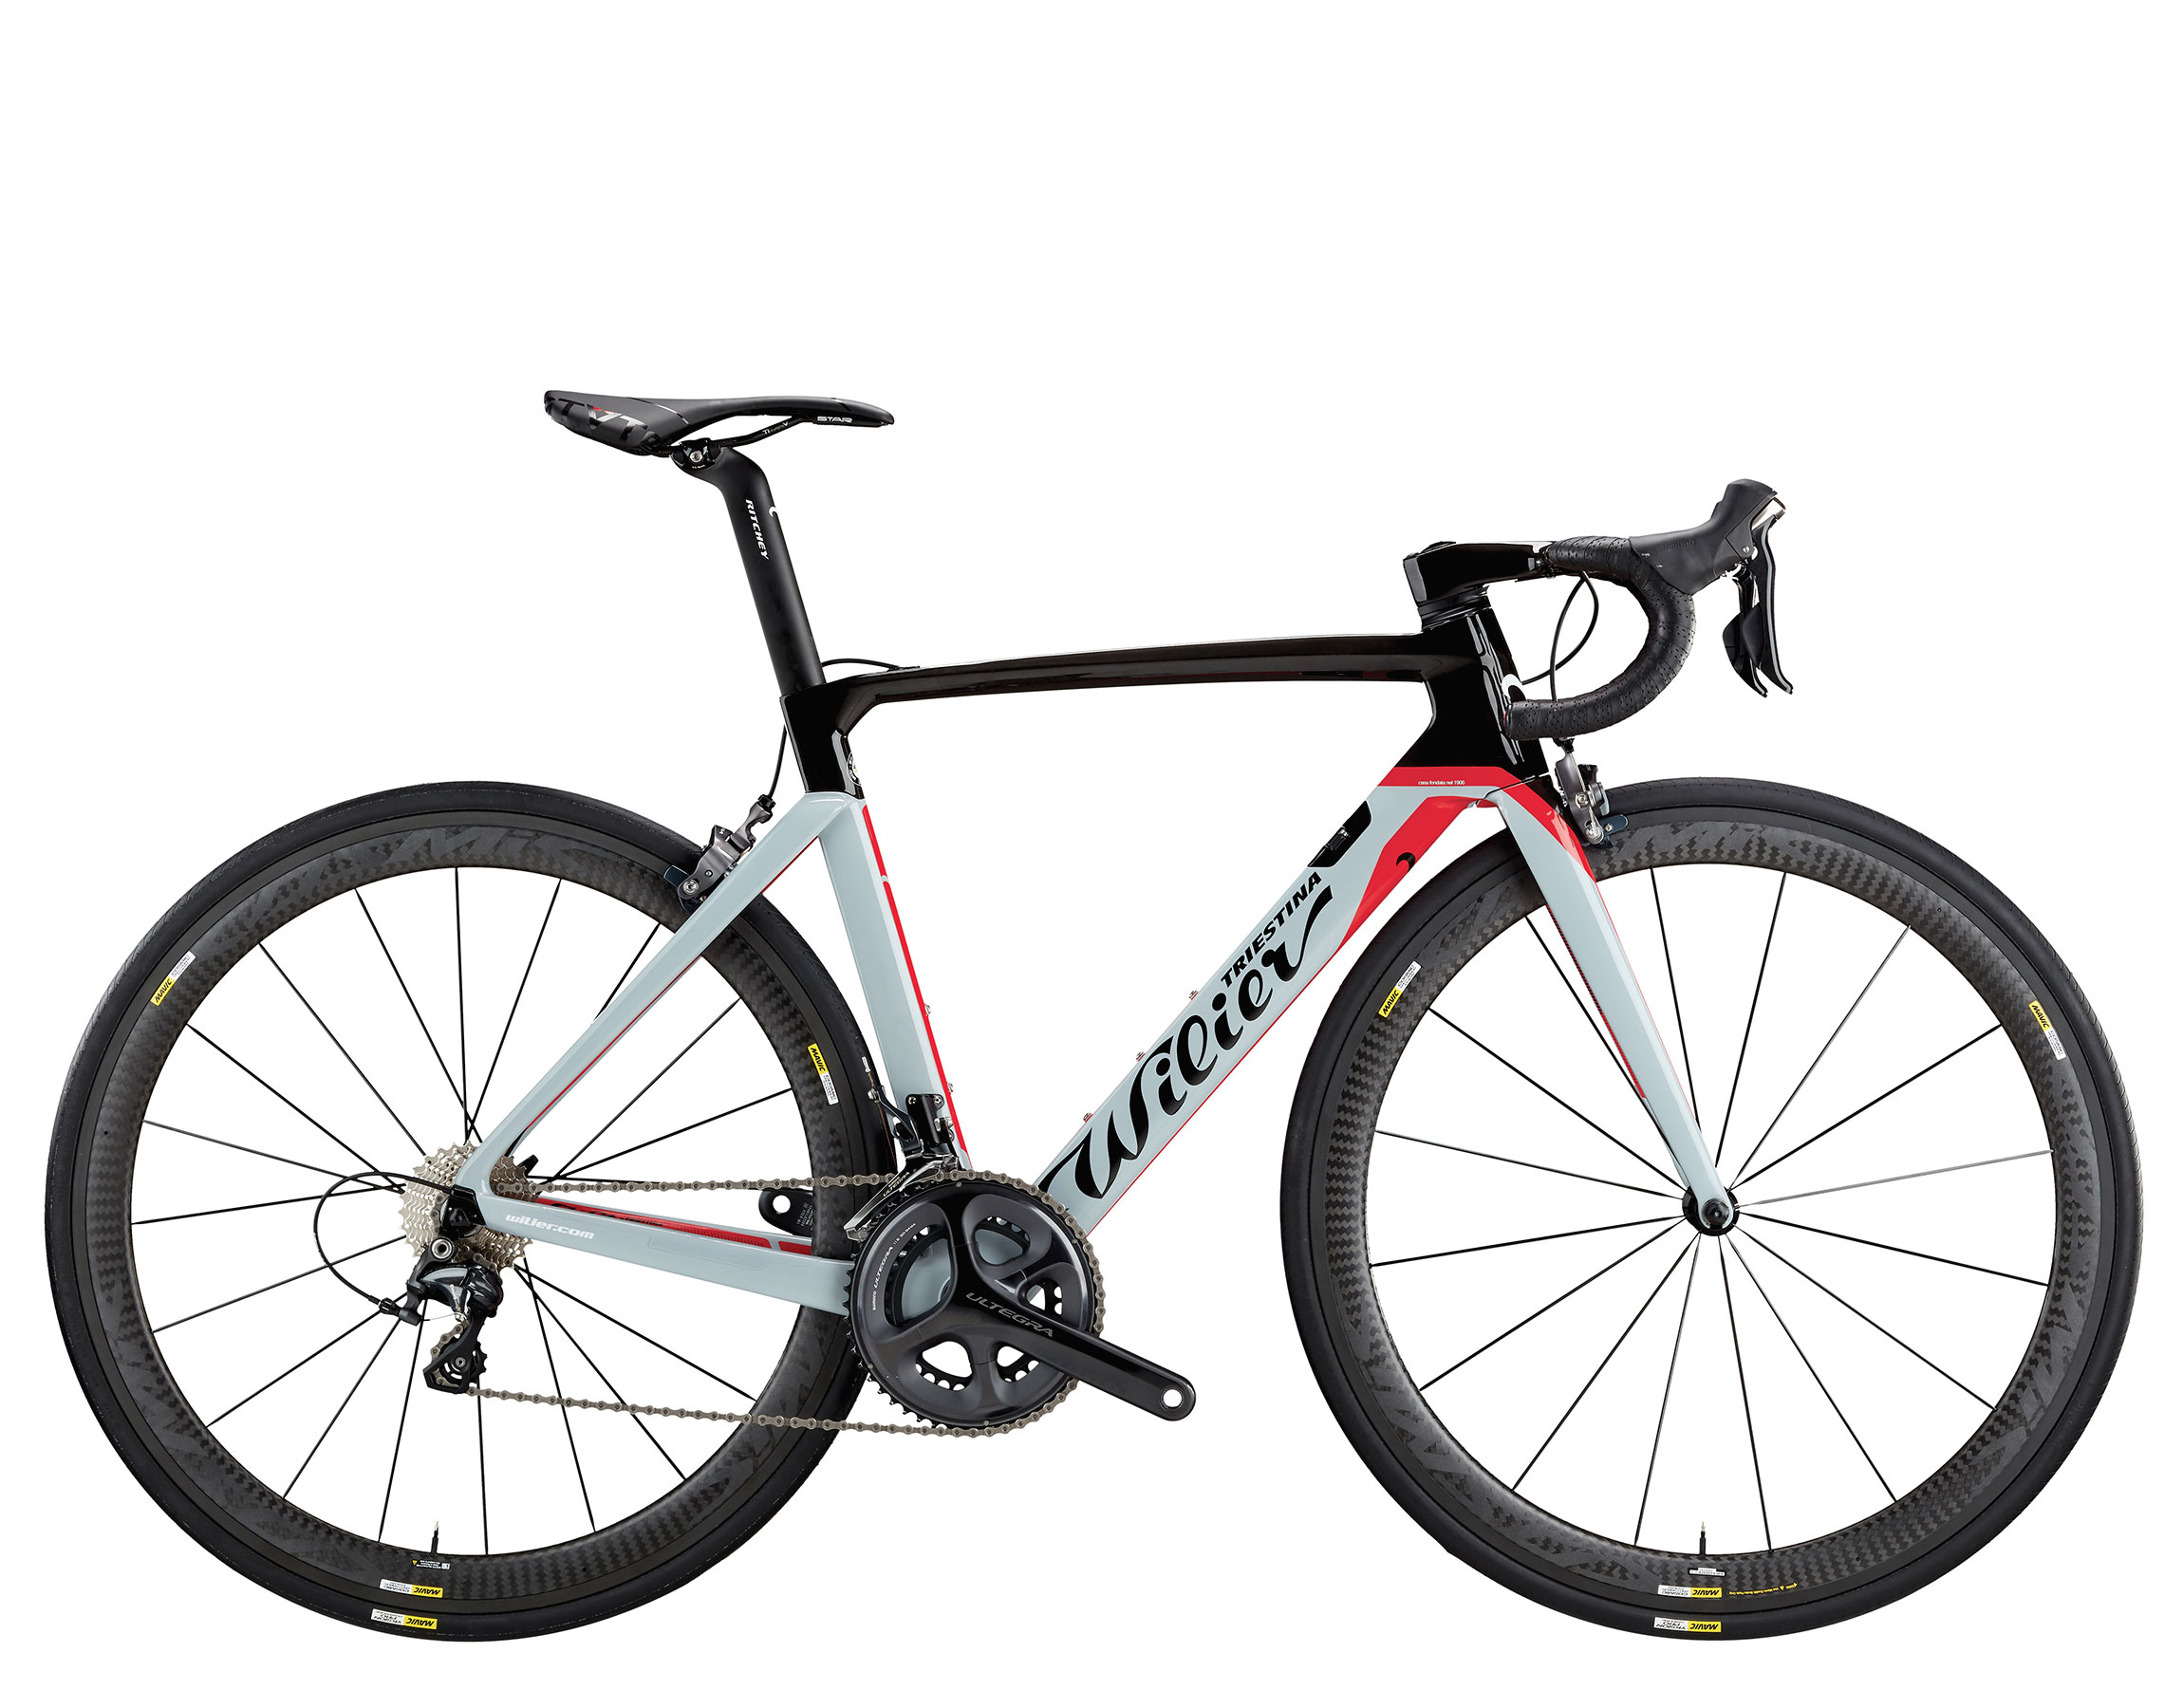 The Cento10AIR will be available in U.S. in two complete build options, and two frameset options. The Cento10AIR Dura Ace 9100 with RS21 wheels and Alabarda integrated bar/stem will retail at $6949.  Cento10AIR Ultegra Di2 with RS21 wheels and Alabarda integrated bar/stem is $6399. Frameset with Alabarda is $4499, or without Alabarda for $3749.